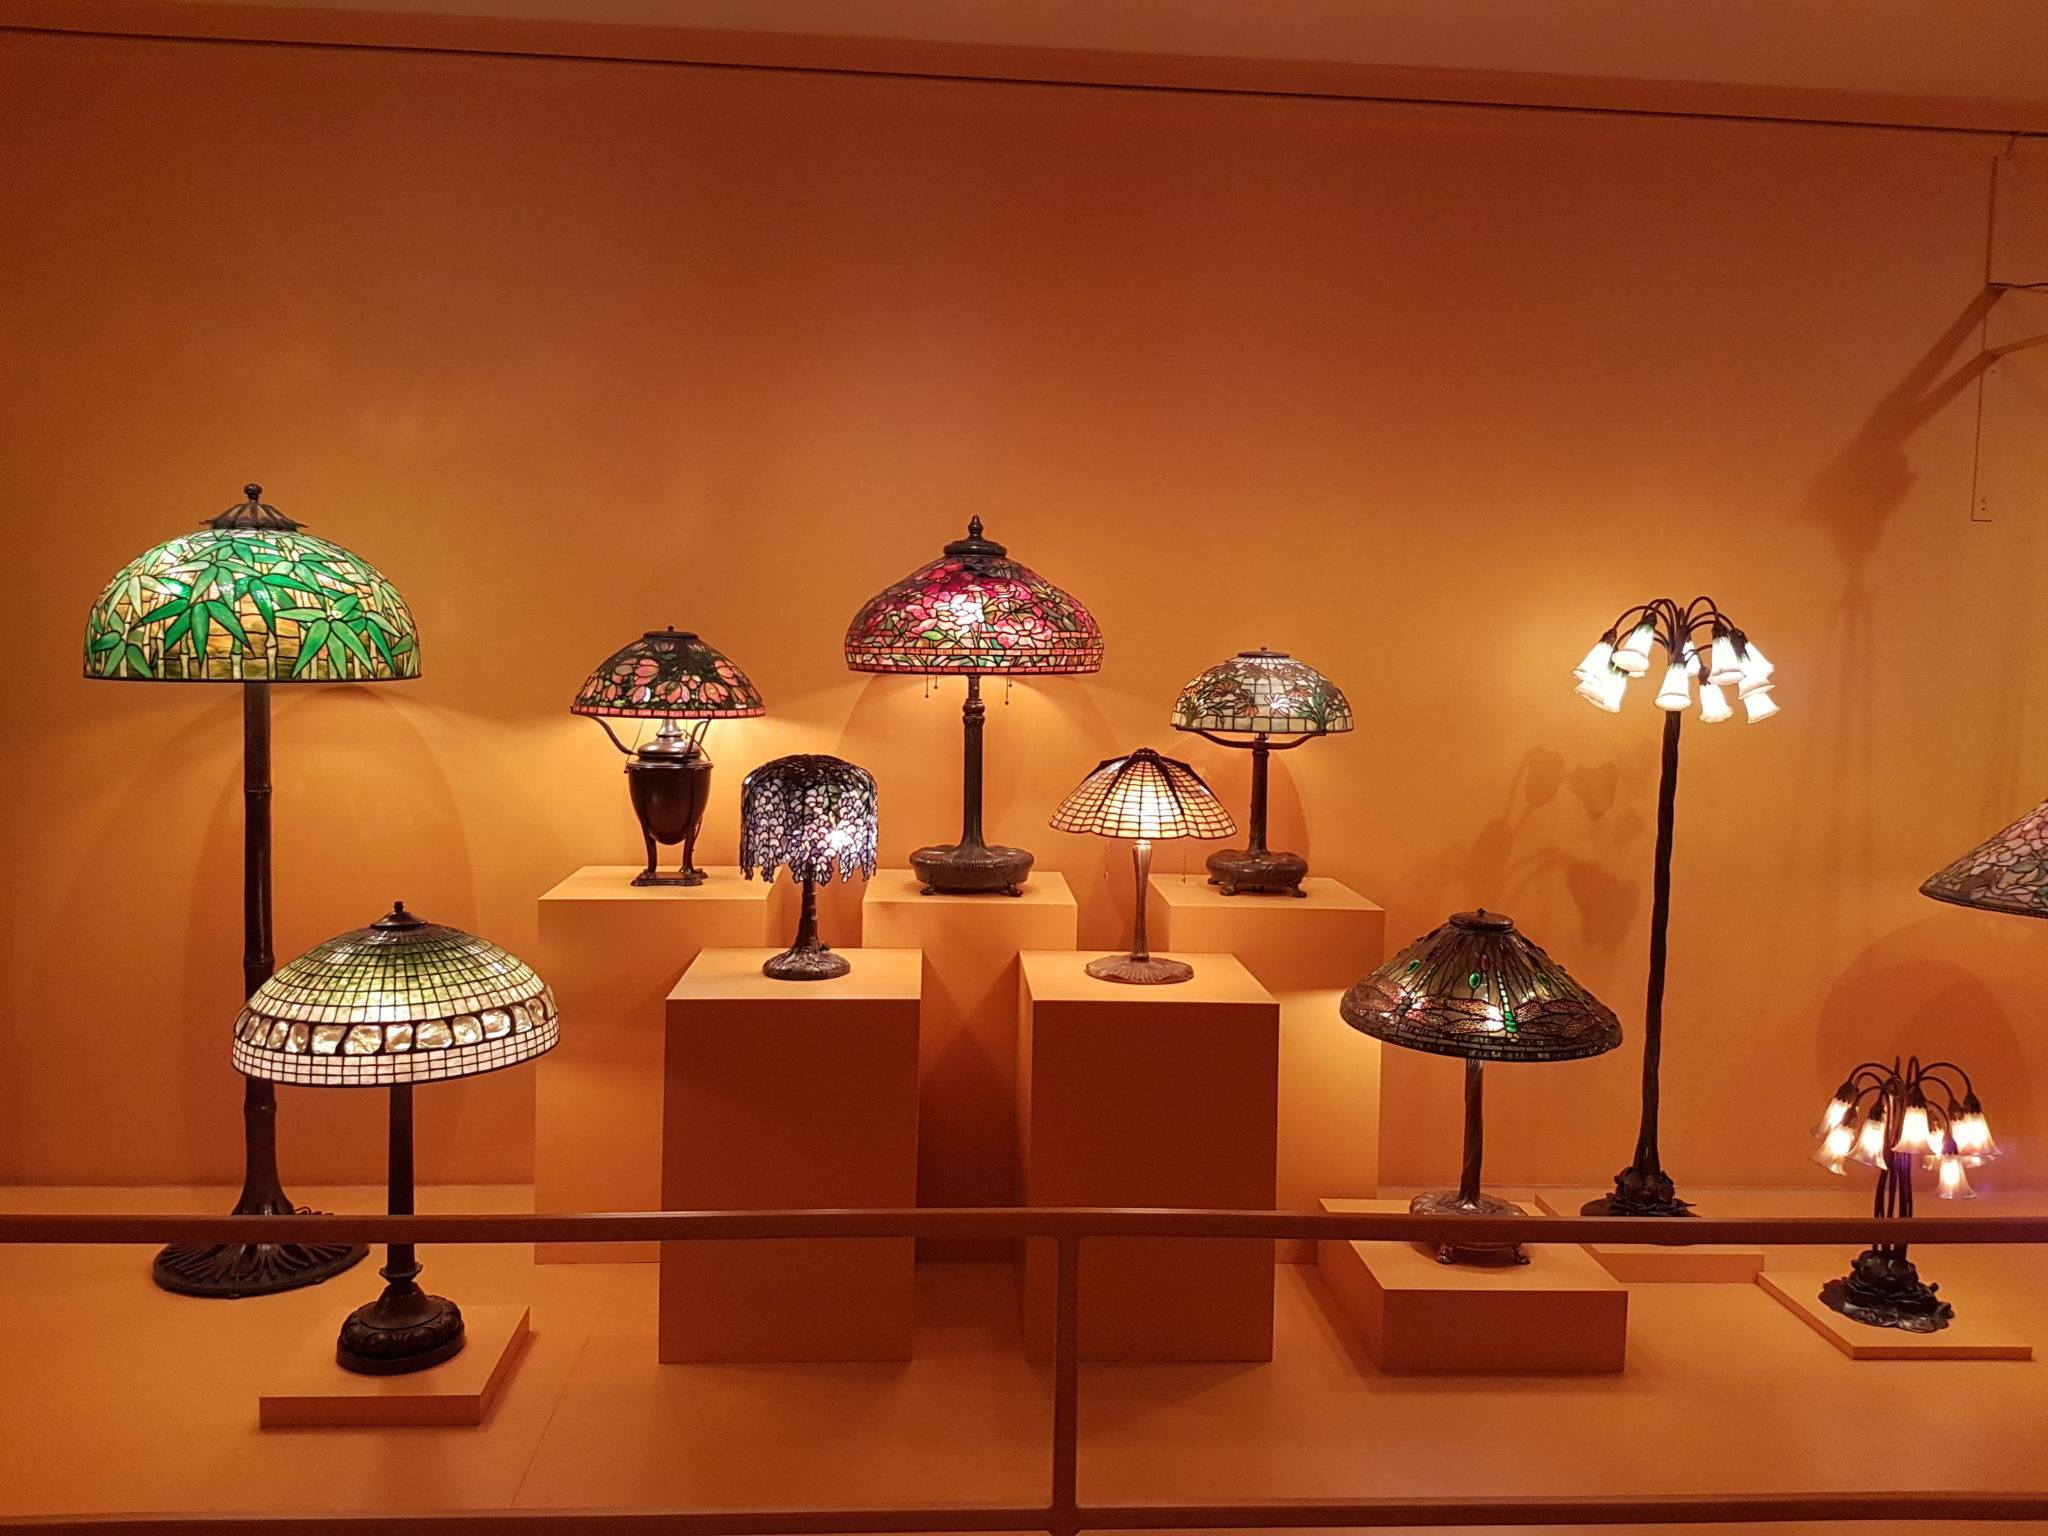 Tiffany lamps for all the family. Image by Ella Buchan